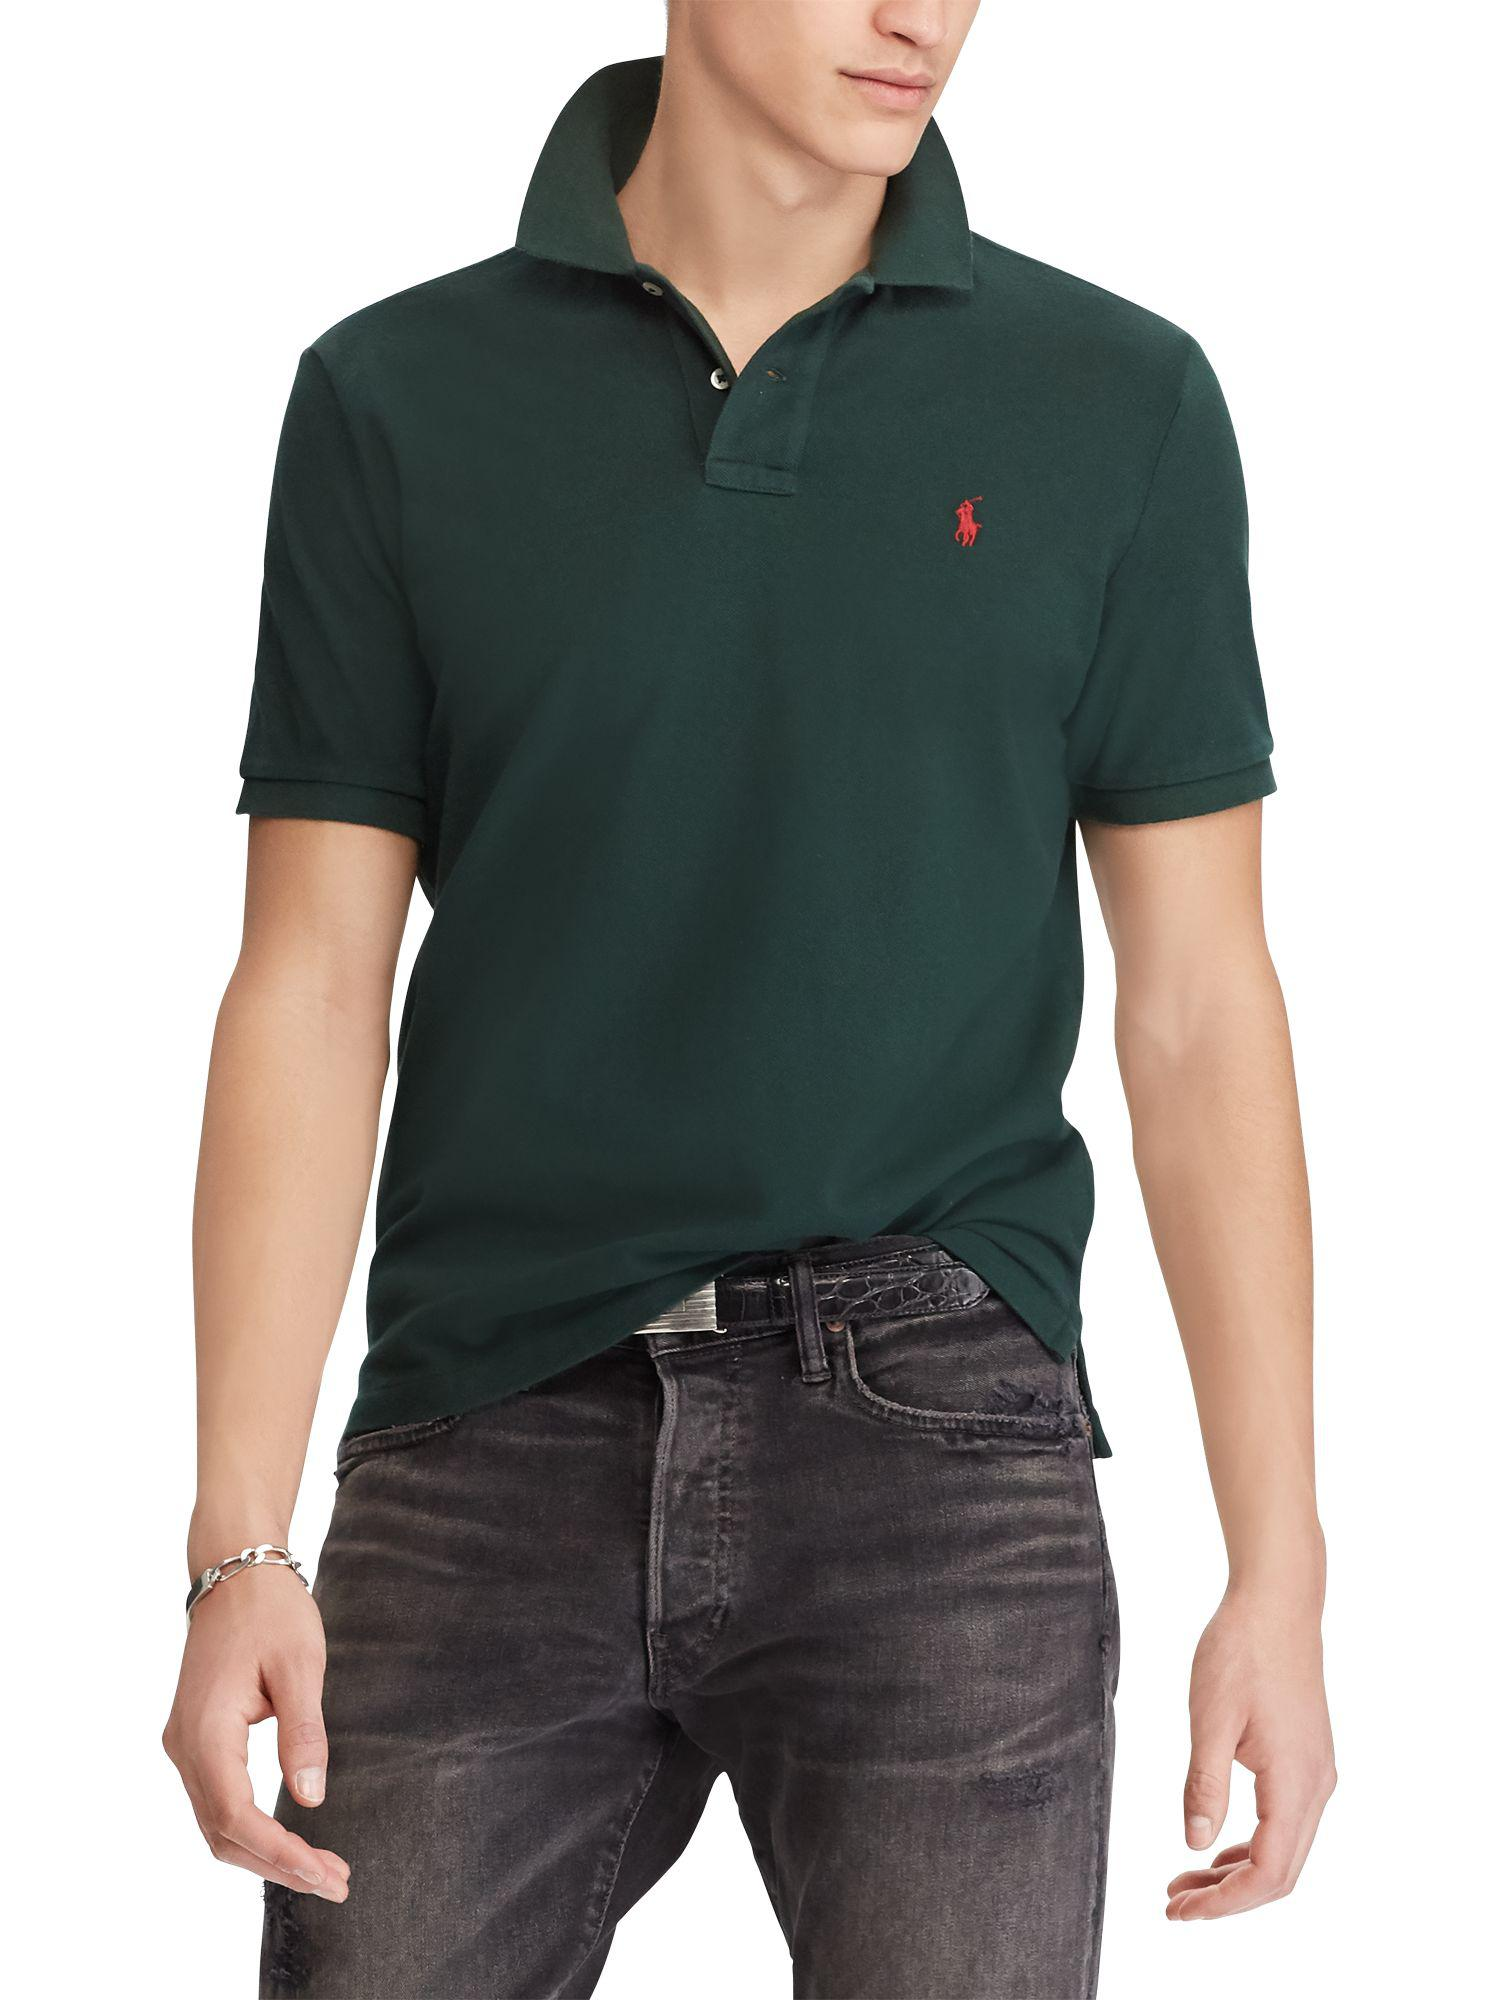 e49295de8 Ralph Lauren. Men's Green Polo Slim Fit Stretch Mesh Polo Shirt. £52 From John  Lewis and Partners